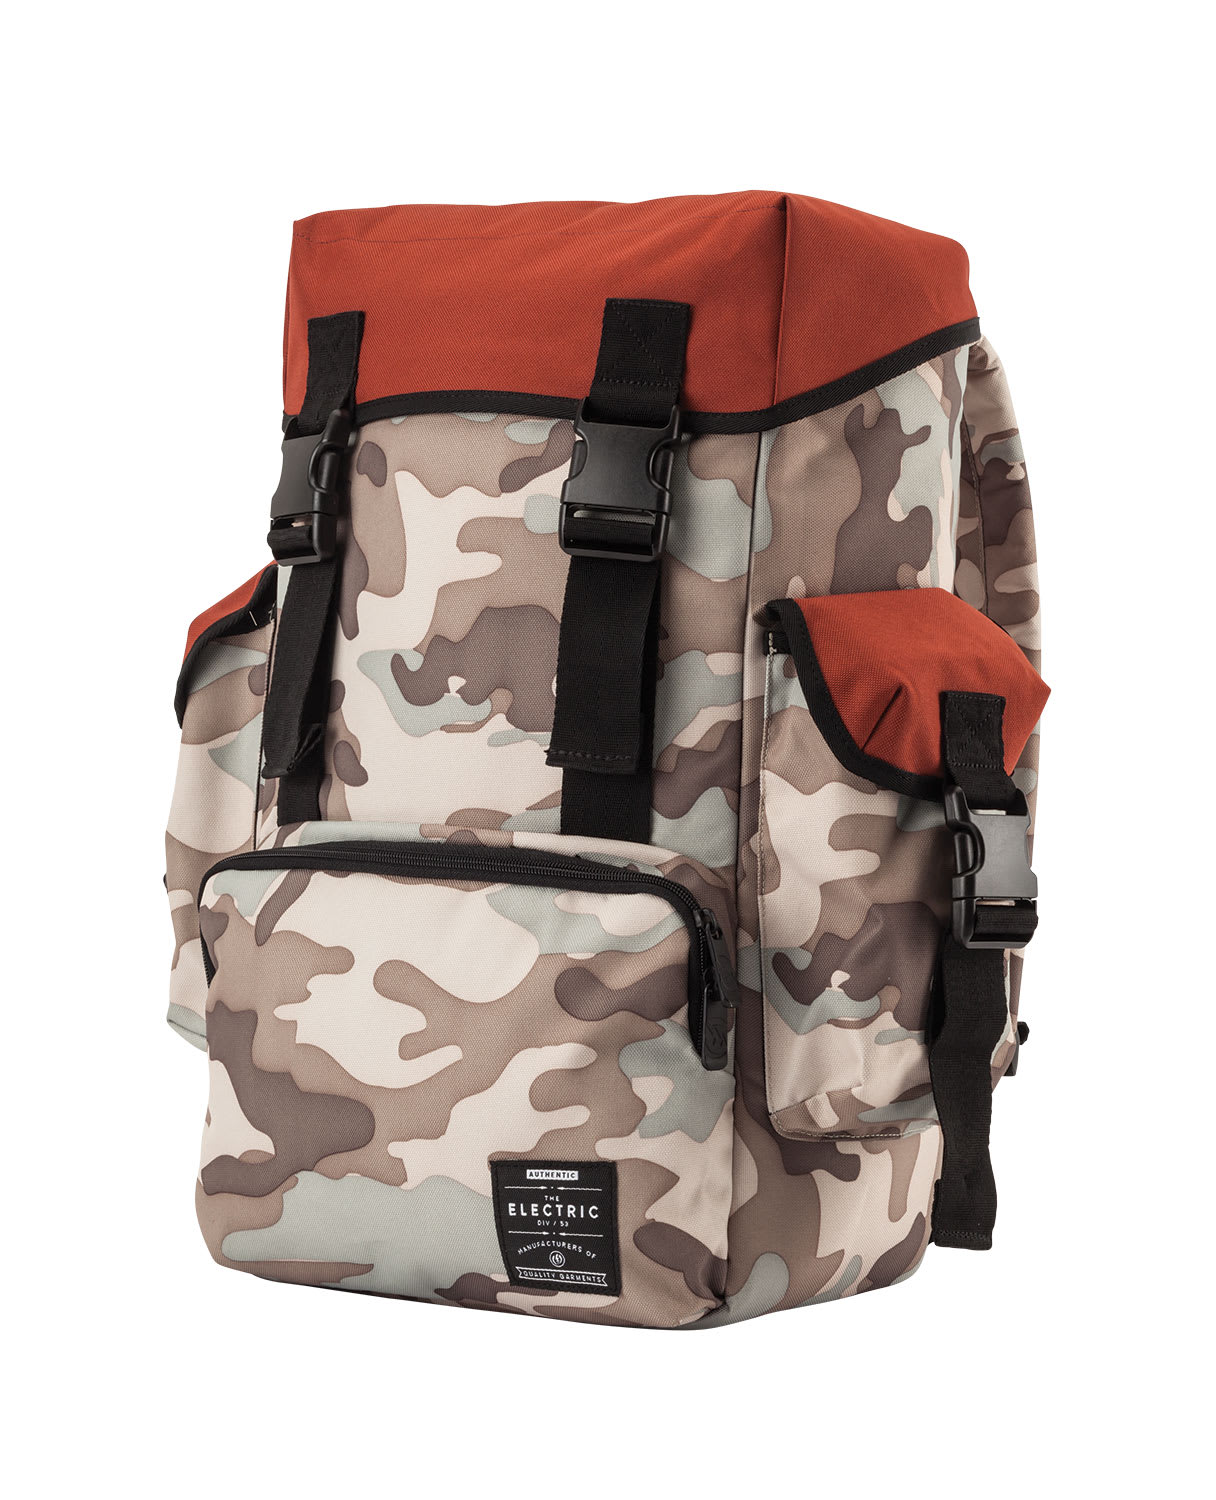 electric mk4 backpack camo 25l ebay. Black Bedroom Furniture Sets. Home Design Ideas